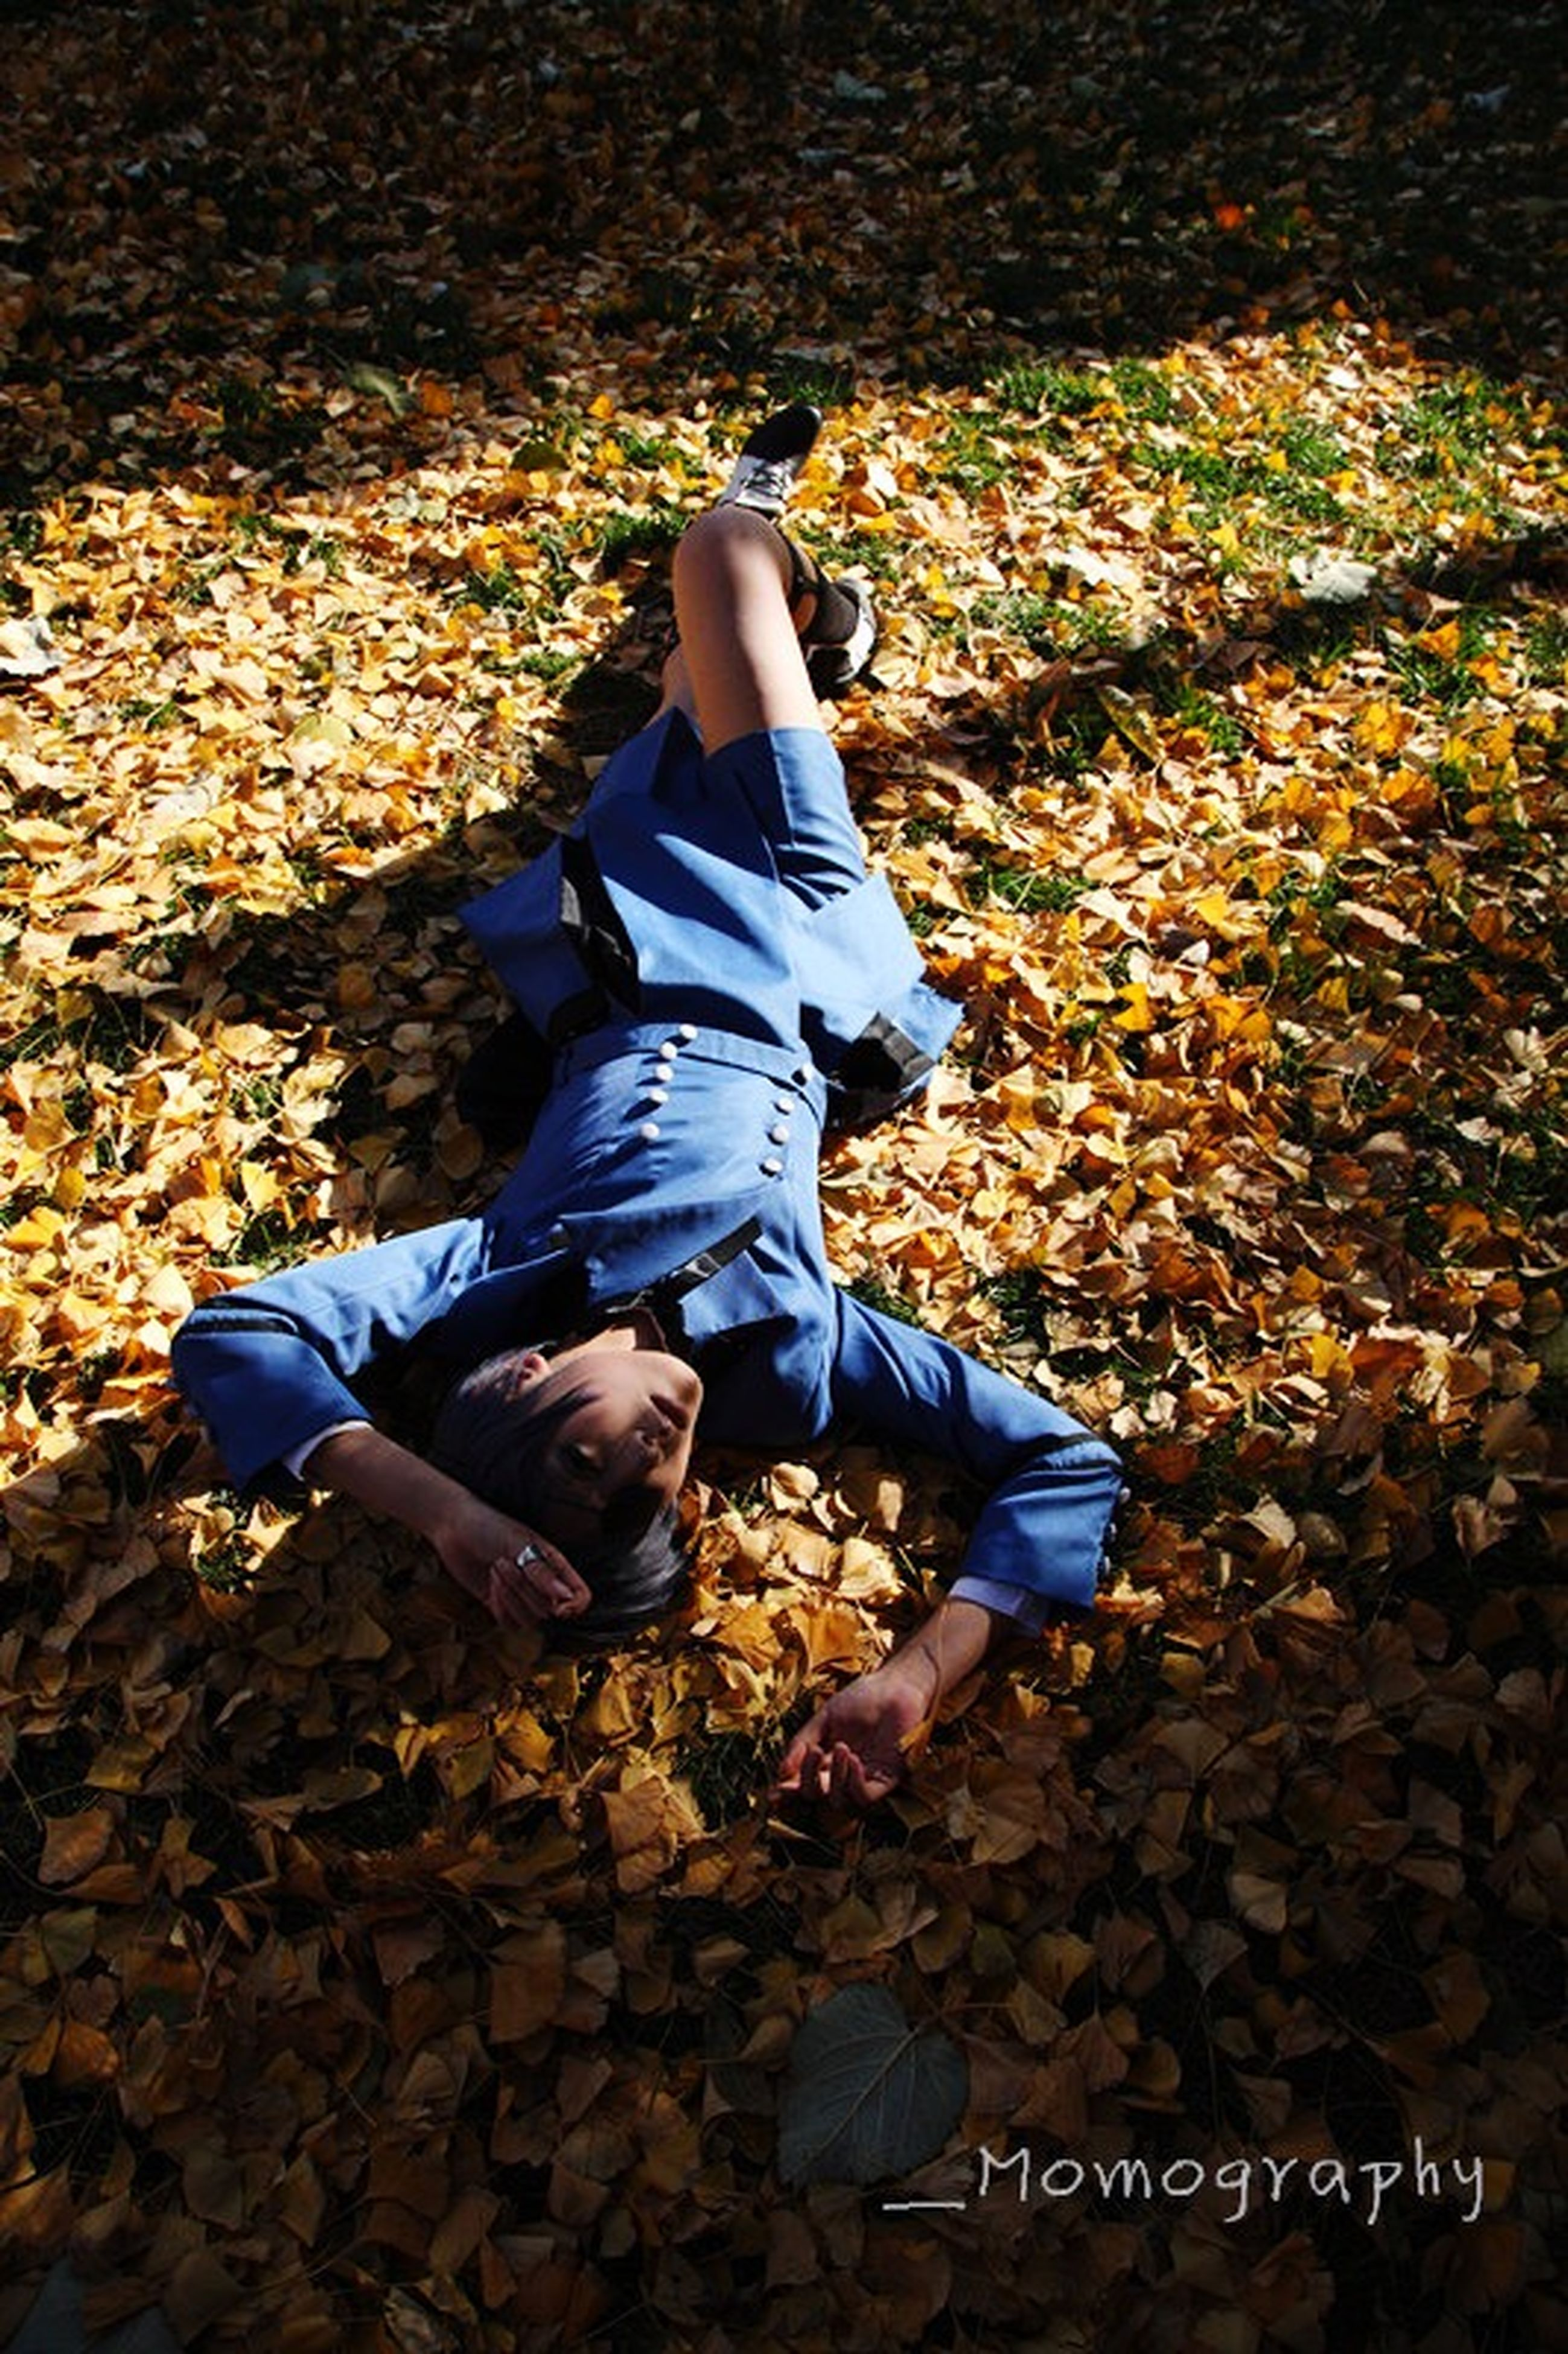 lifestyles, autumn, leisure activity, casual clothing, childhood, leaf, full length, field, change, high angle view, season, elementary age, leaves, standing, person, dry, day, outdoors